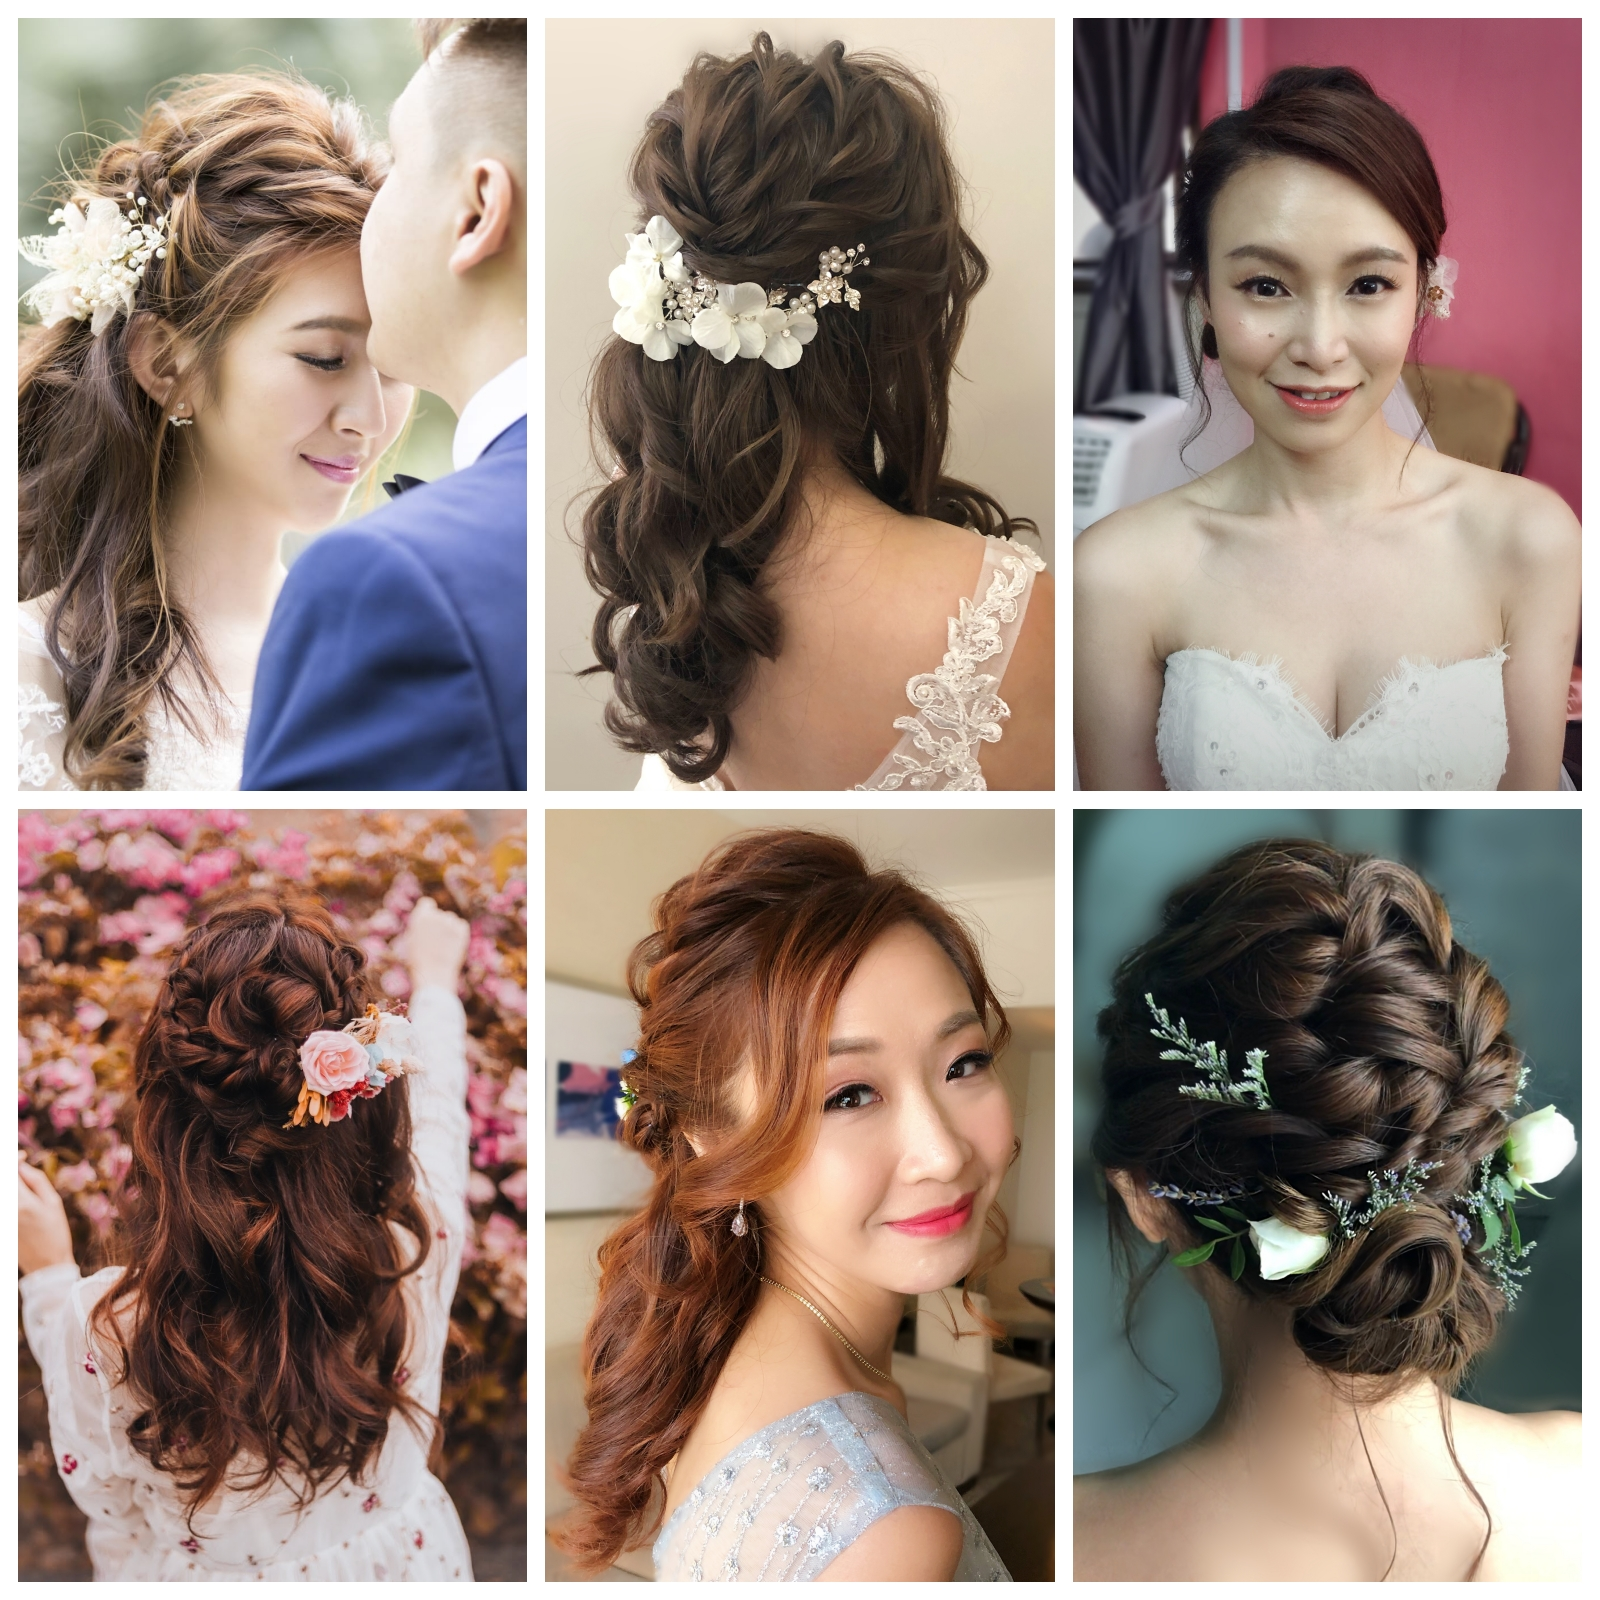 Best Bridal Makeup Artists Singapore Ling Chia Portfolio